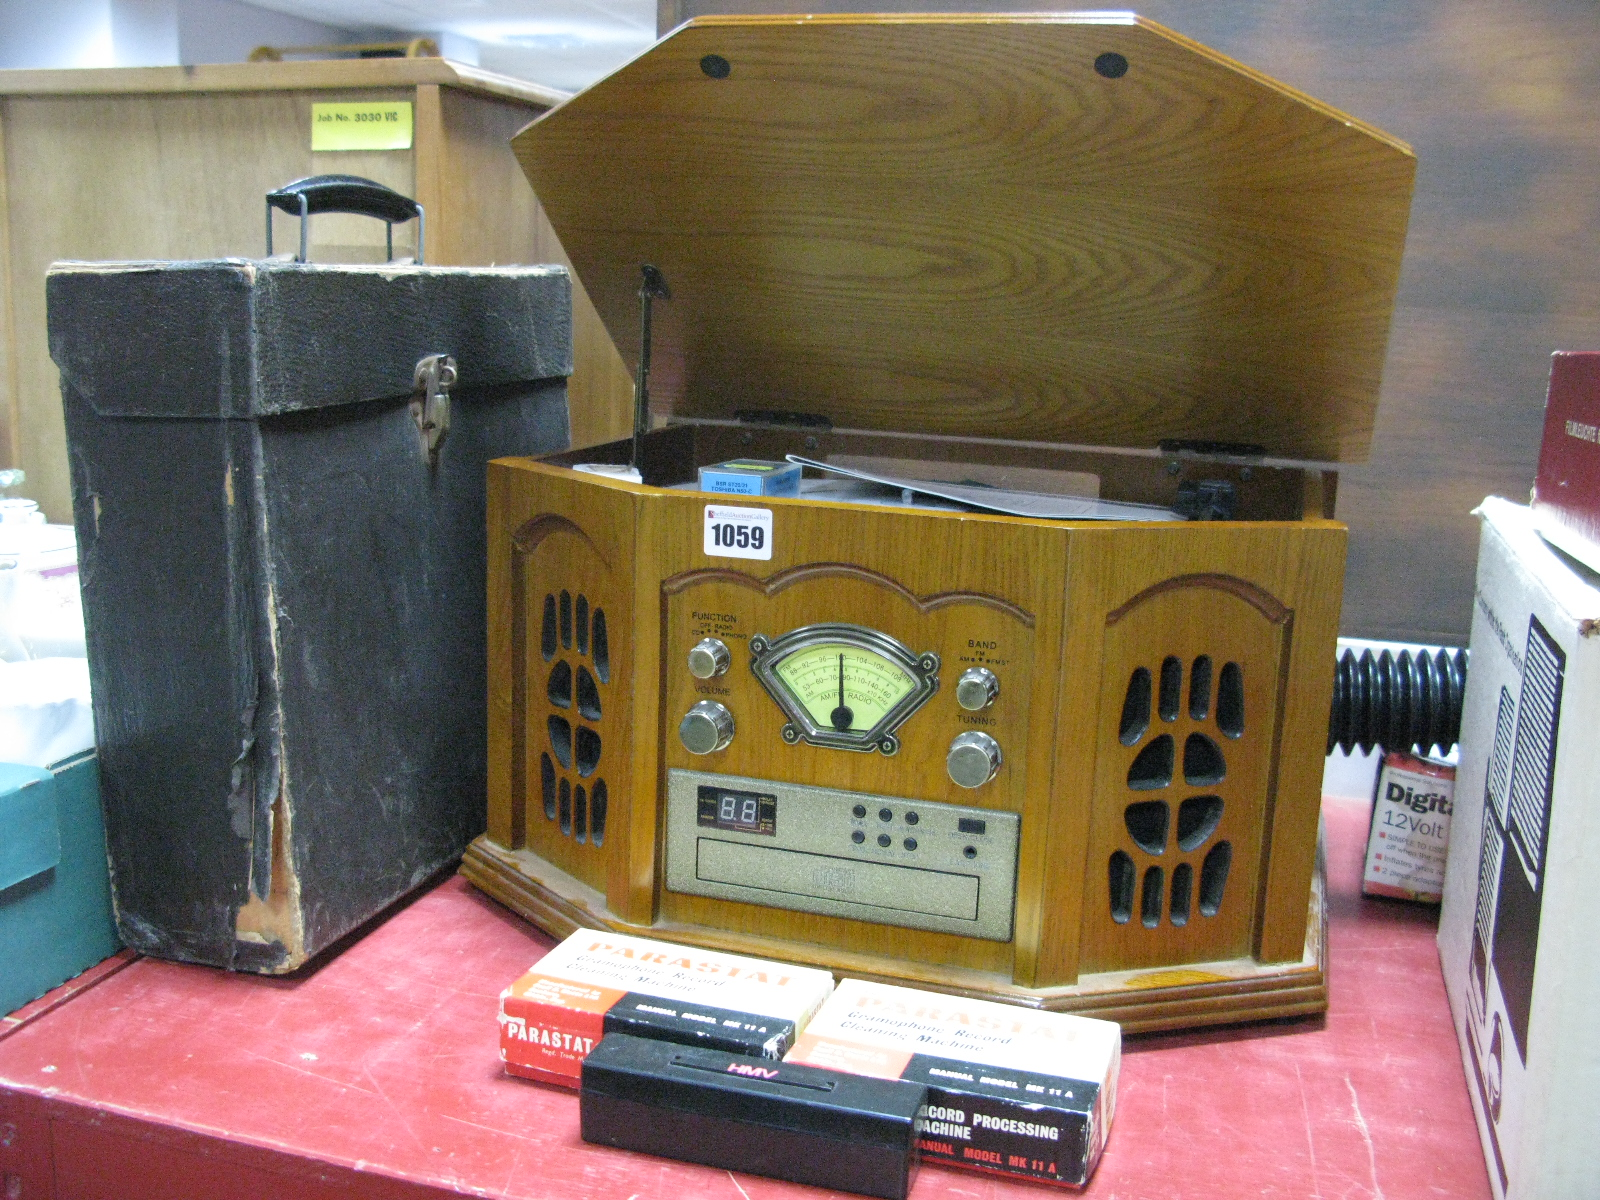 Lot 1059 - A Combination Turntable/CD/Tuner Stereo Console, in wood grain effect, and a case of 78rpm's. (2)